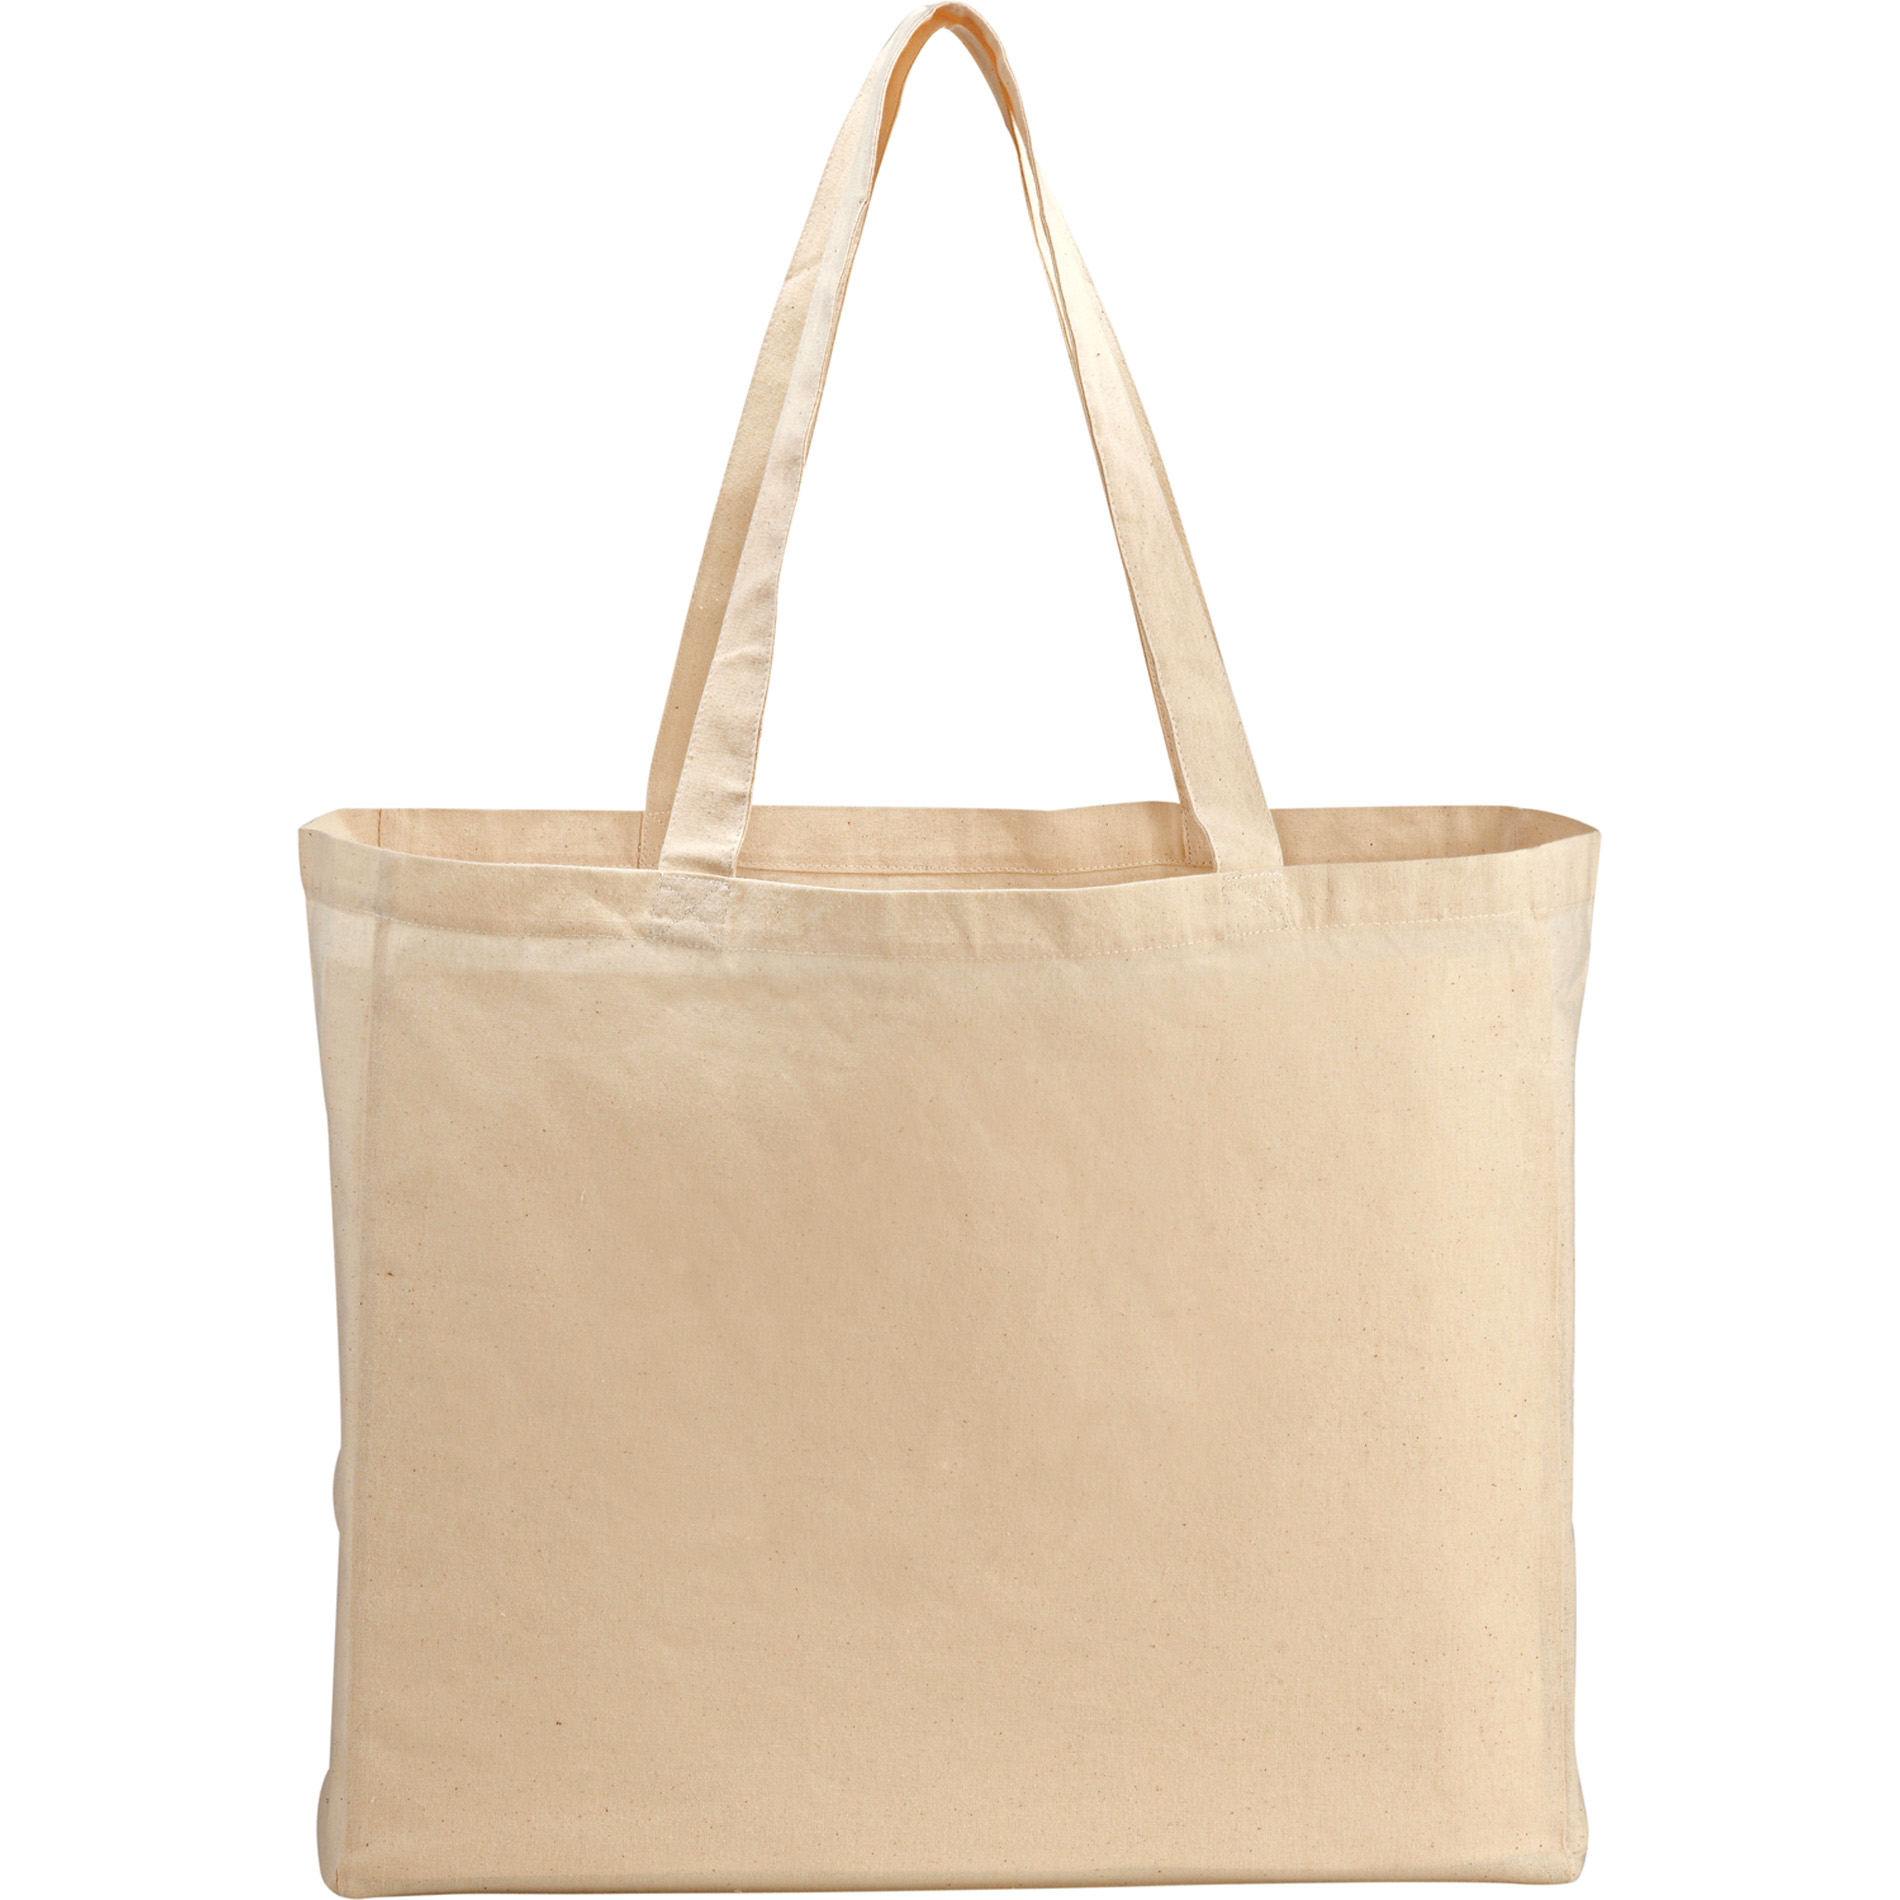 LEEDS 7900-47 - 6oz Cotton Canvas All-Purpose Tote